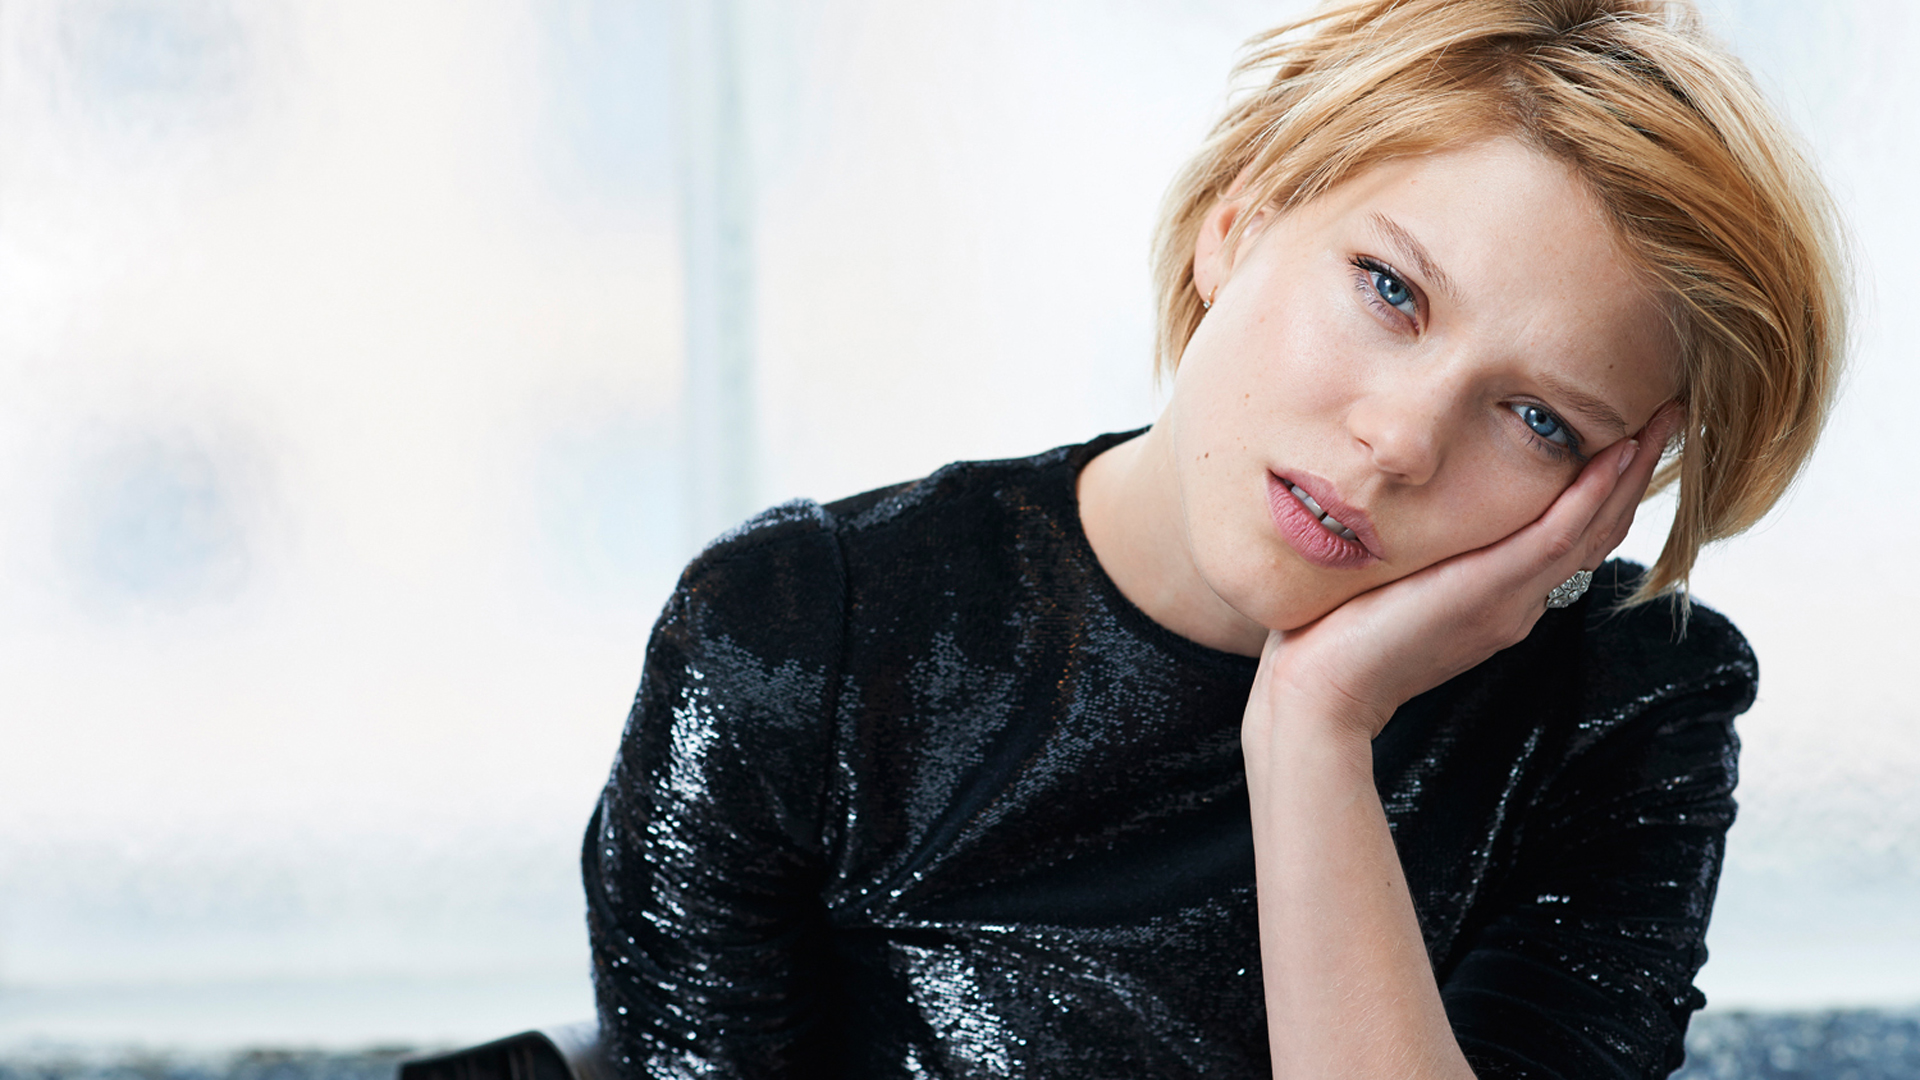 Full Hd Wallpaper For Laptop 27 Hd Lea Seydoux Wallpapers